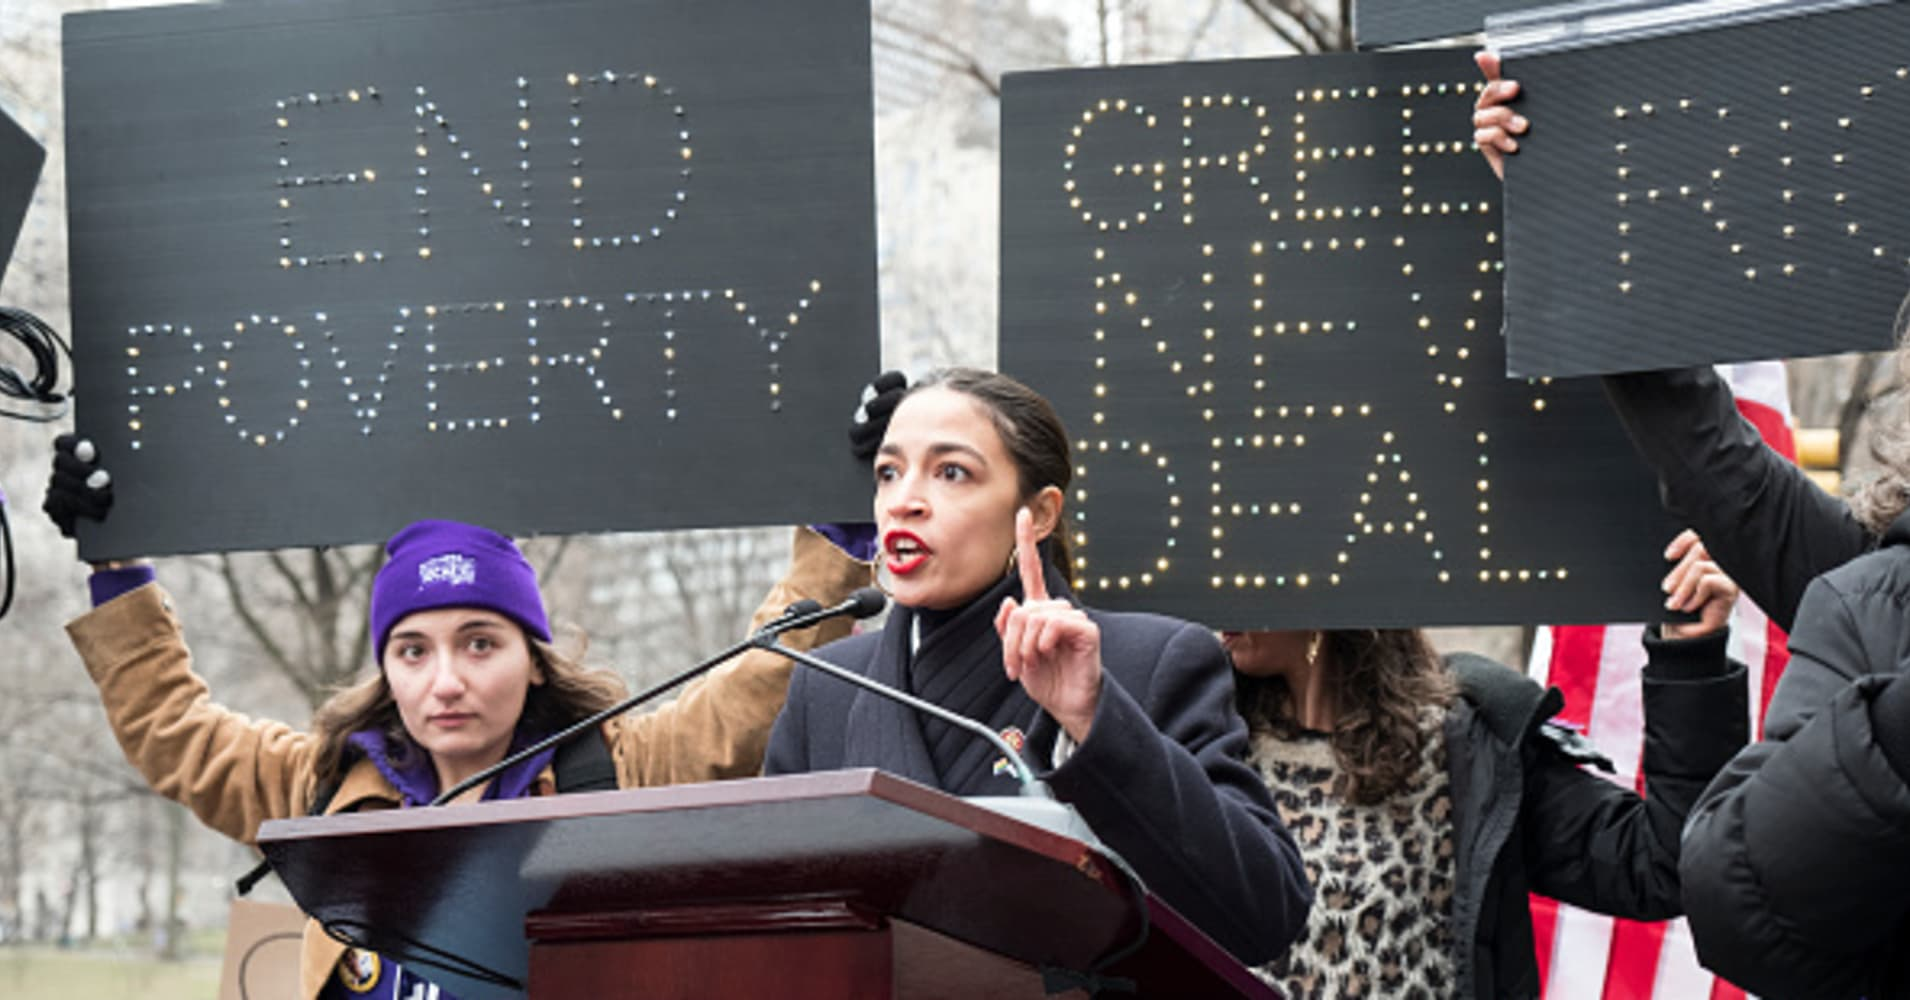 Ocasio-Cortez's Green New Deal is not going over well at one of the year's biggest energy gatherings